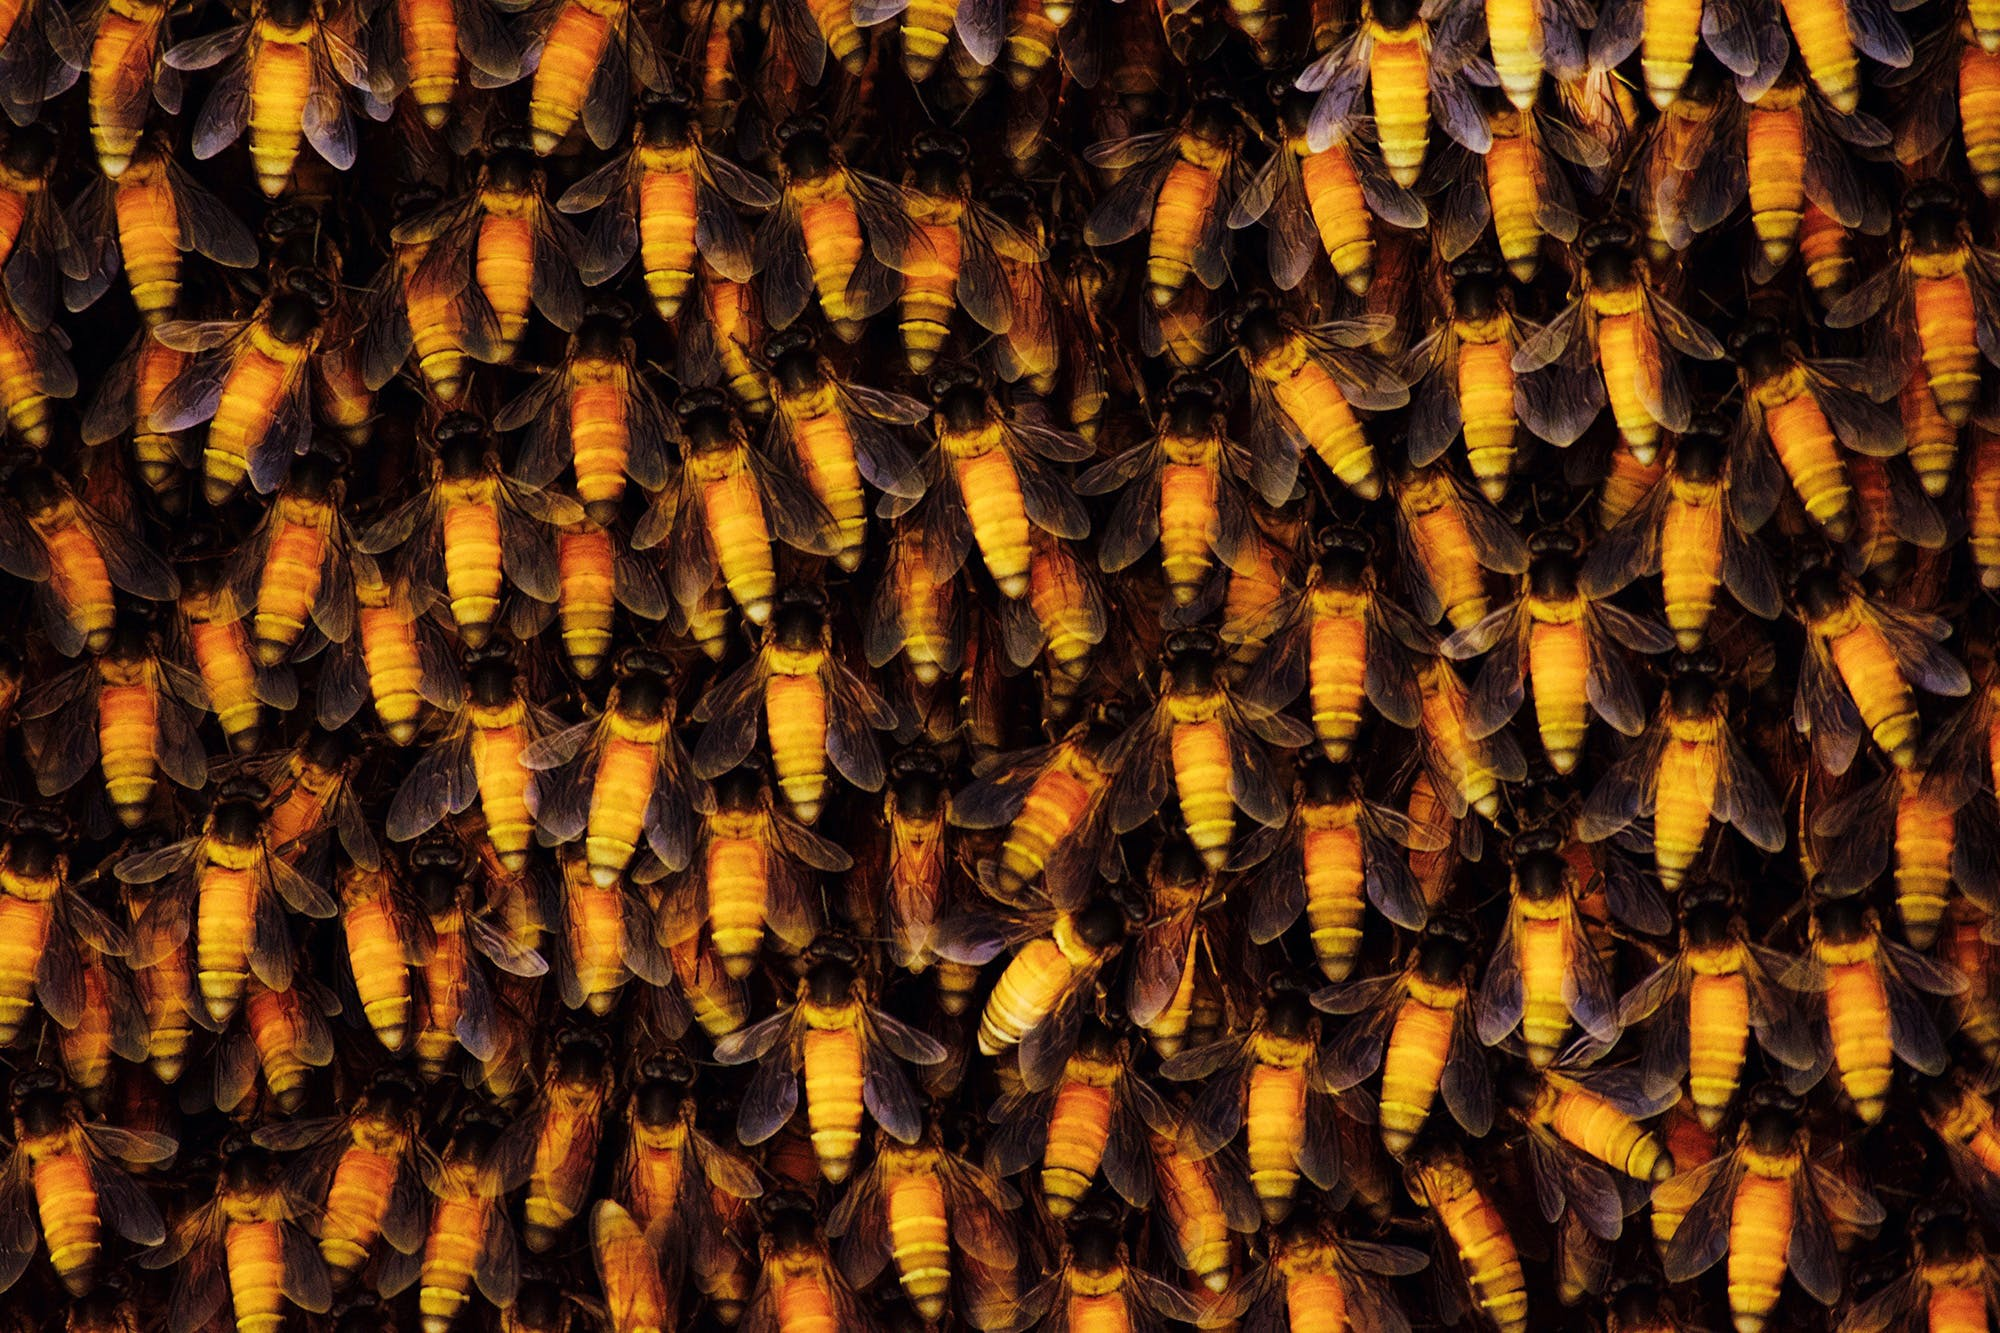 Bee populations across the world are falling due to human activities such as intensive agriculture, pesticide use, urbanization, and climate change.